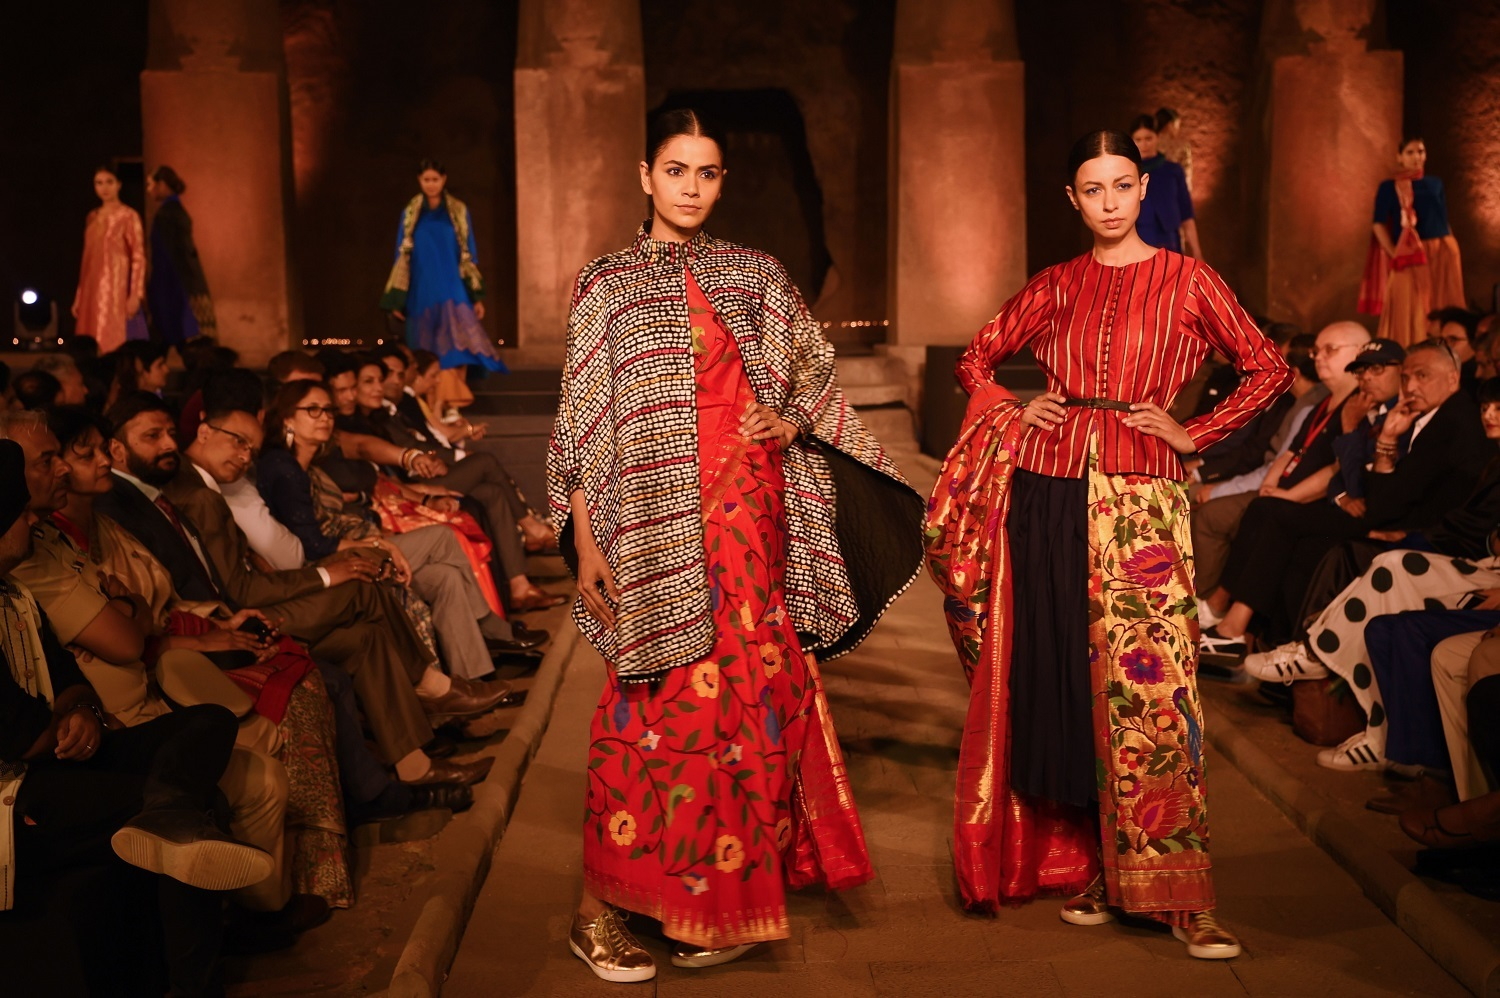 Models showcase designs made from traditional textiles from various regions across India during the 'Artisan Speak' event at the UNESCO World Heritage site Elephanta Caves, near Mumbai on January 28, 2019. (Indranil Mukherjee/AFP/Getty Images)